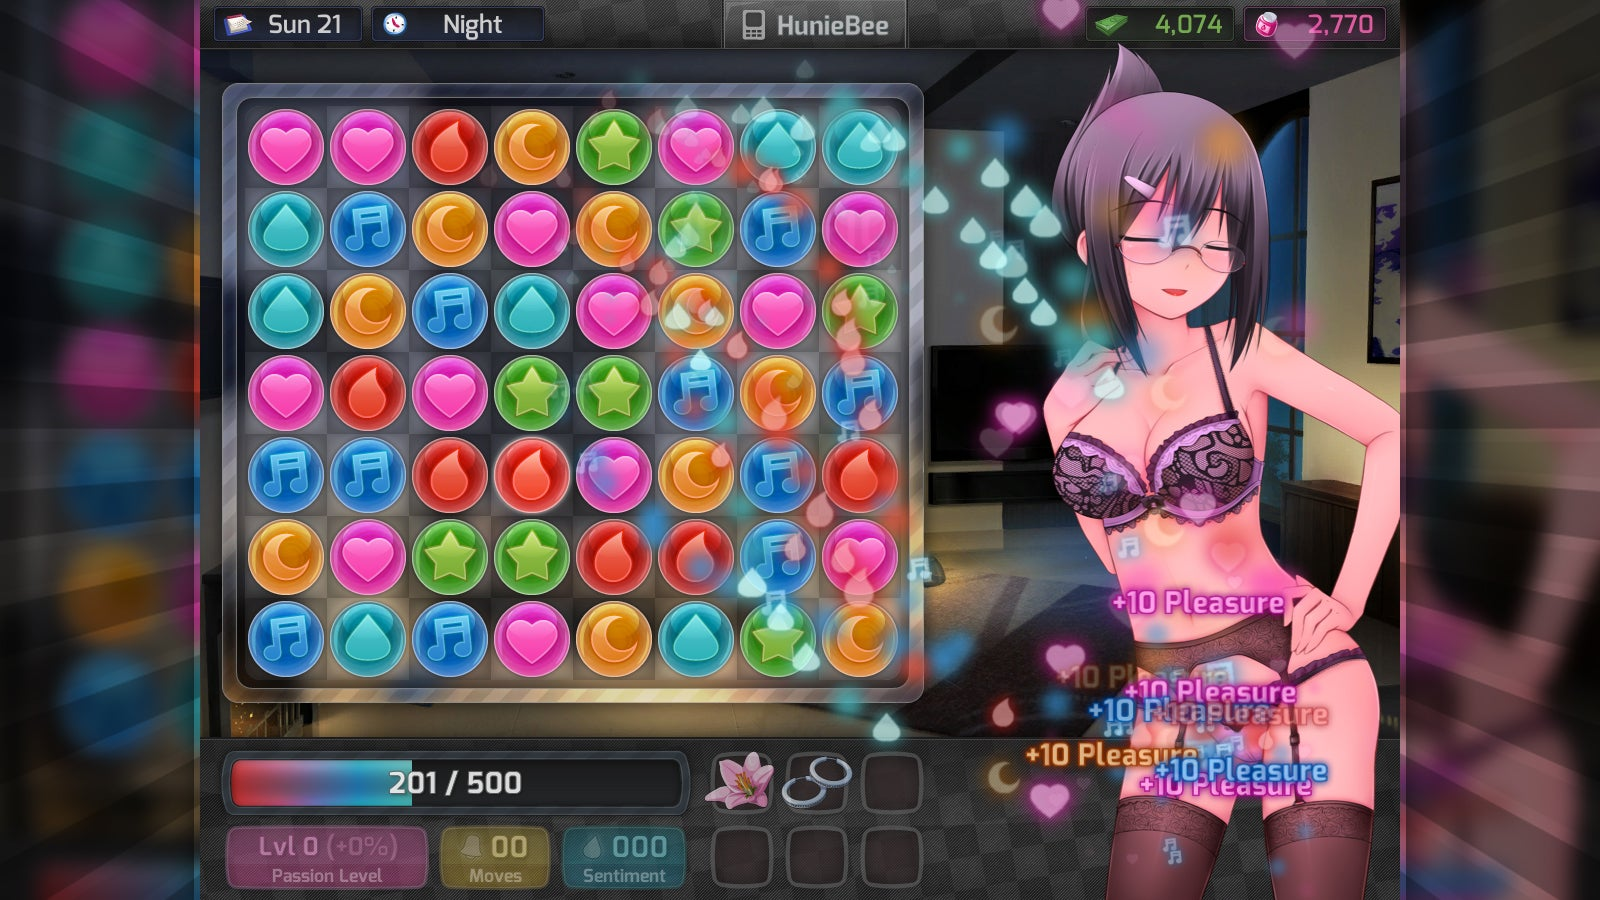 Consenting adult game